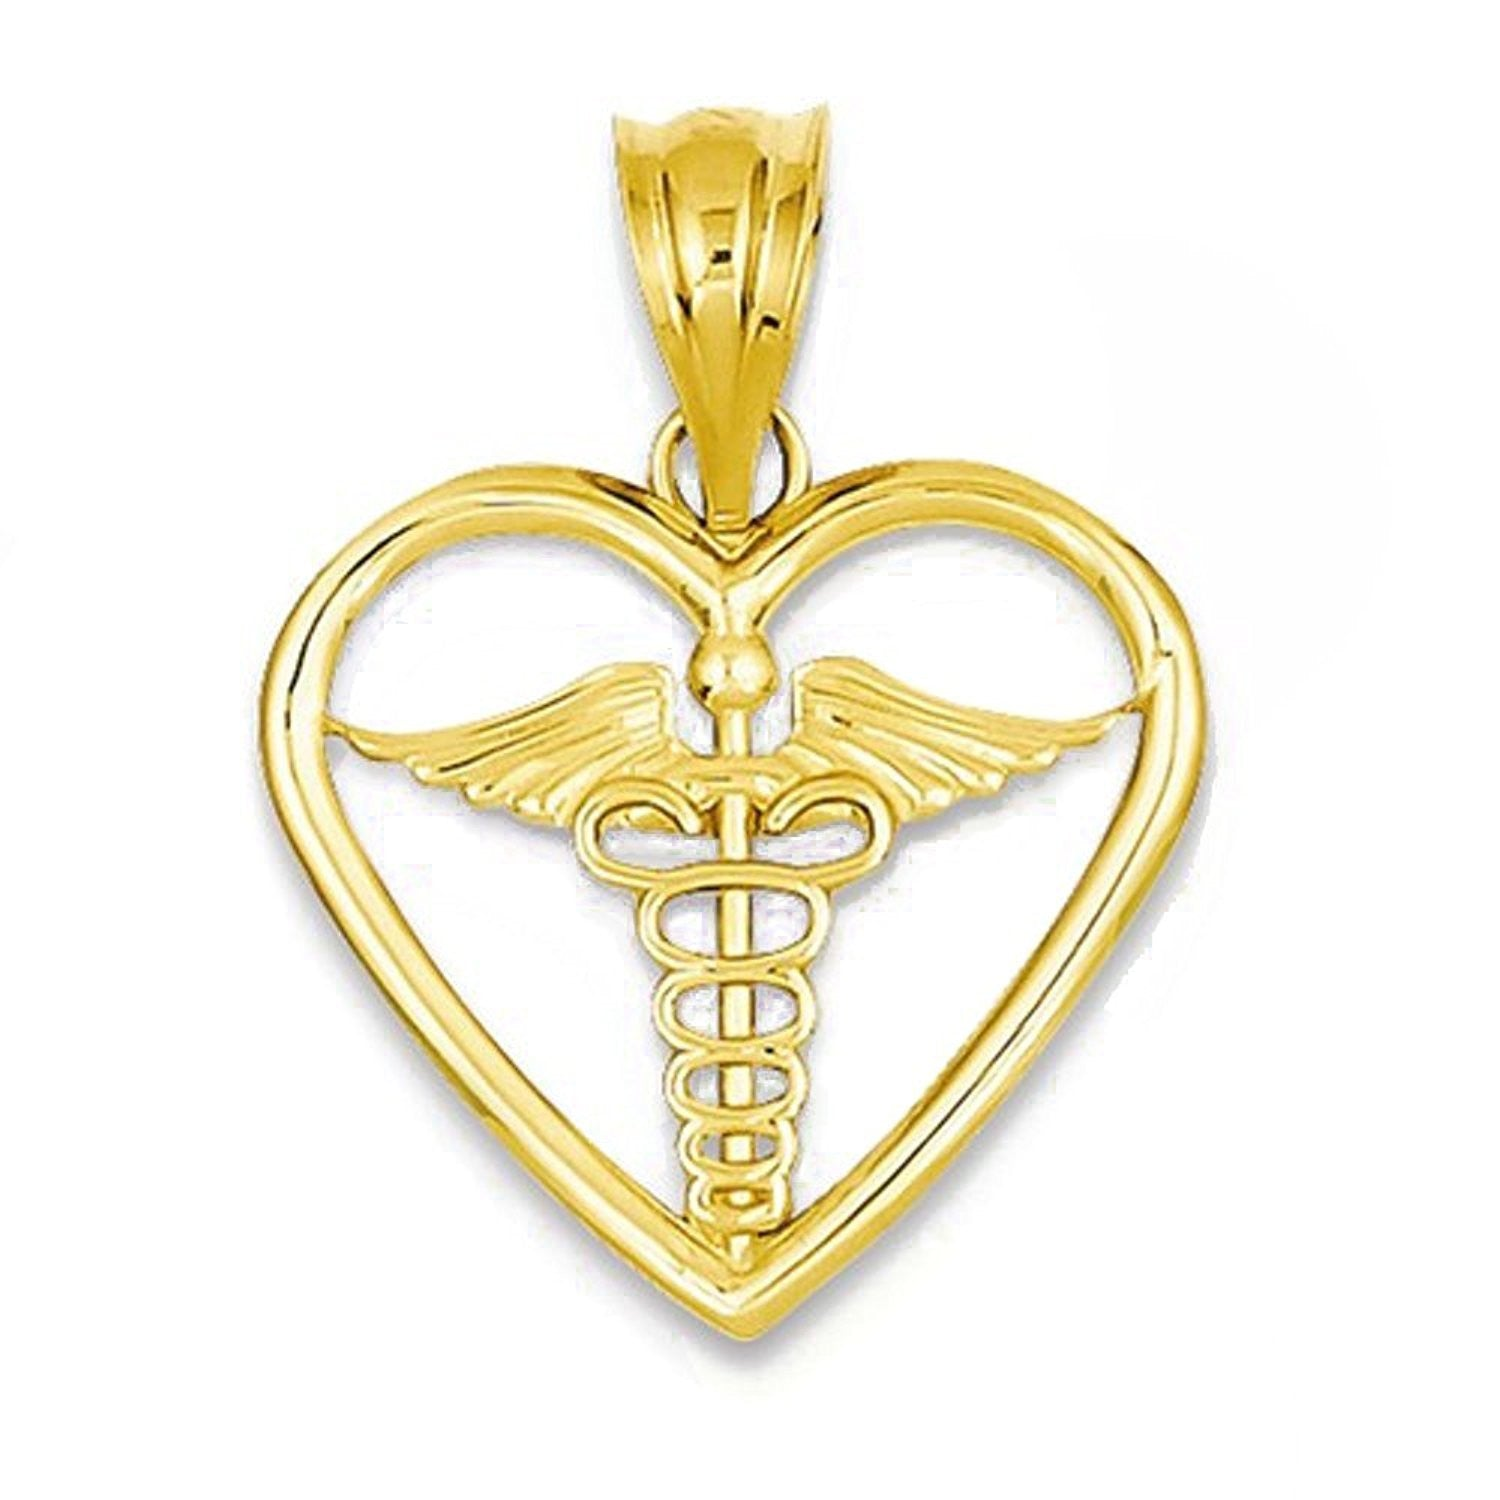 14k Yellow Gold Medical Caduceus Symbol Heart Pendant Charm